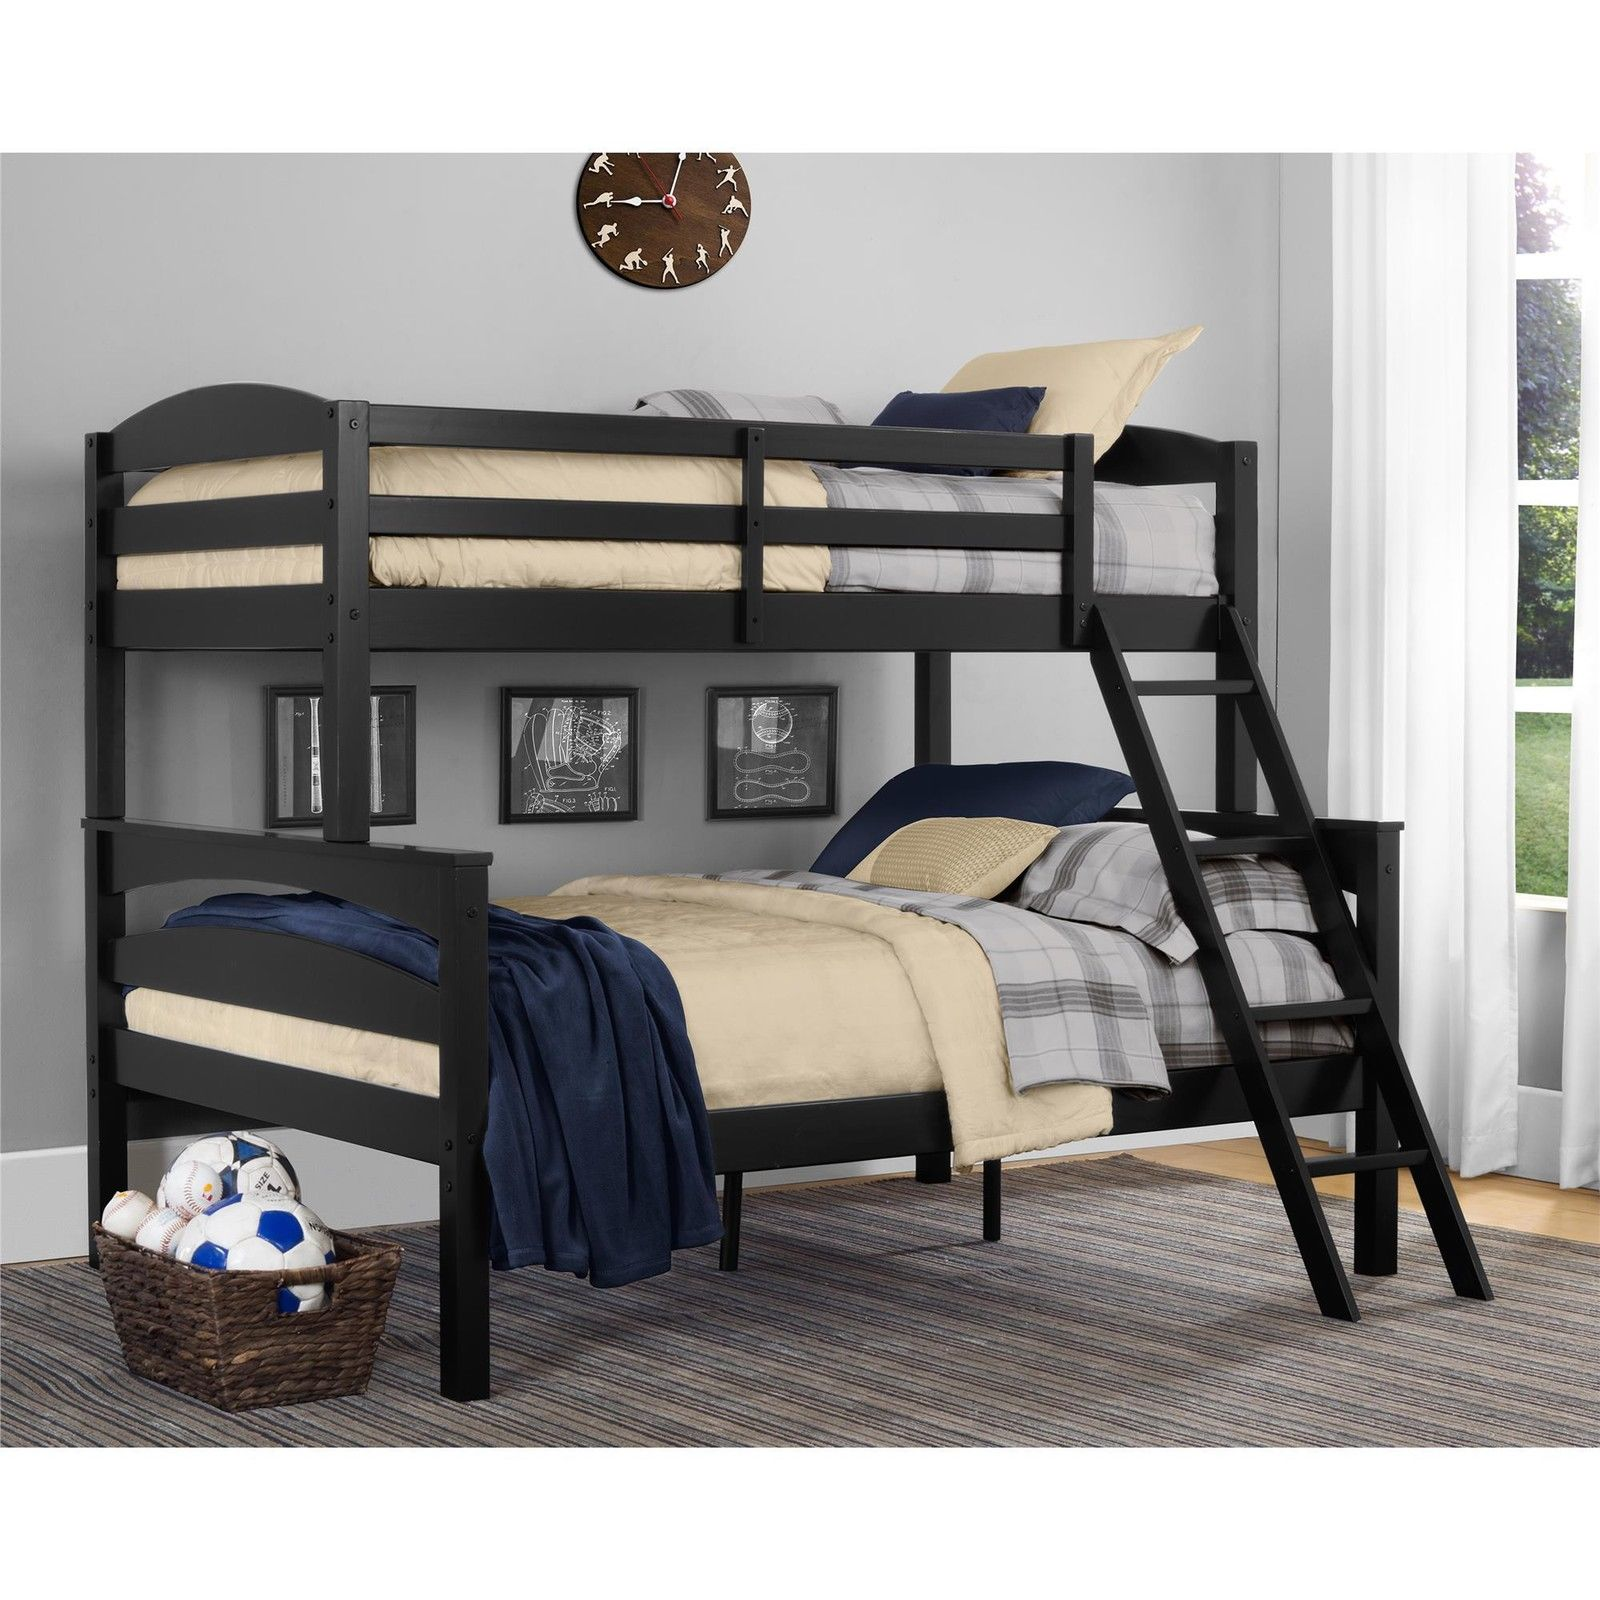 Espresso Childrens Bedroom Furniture